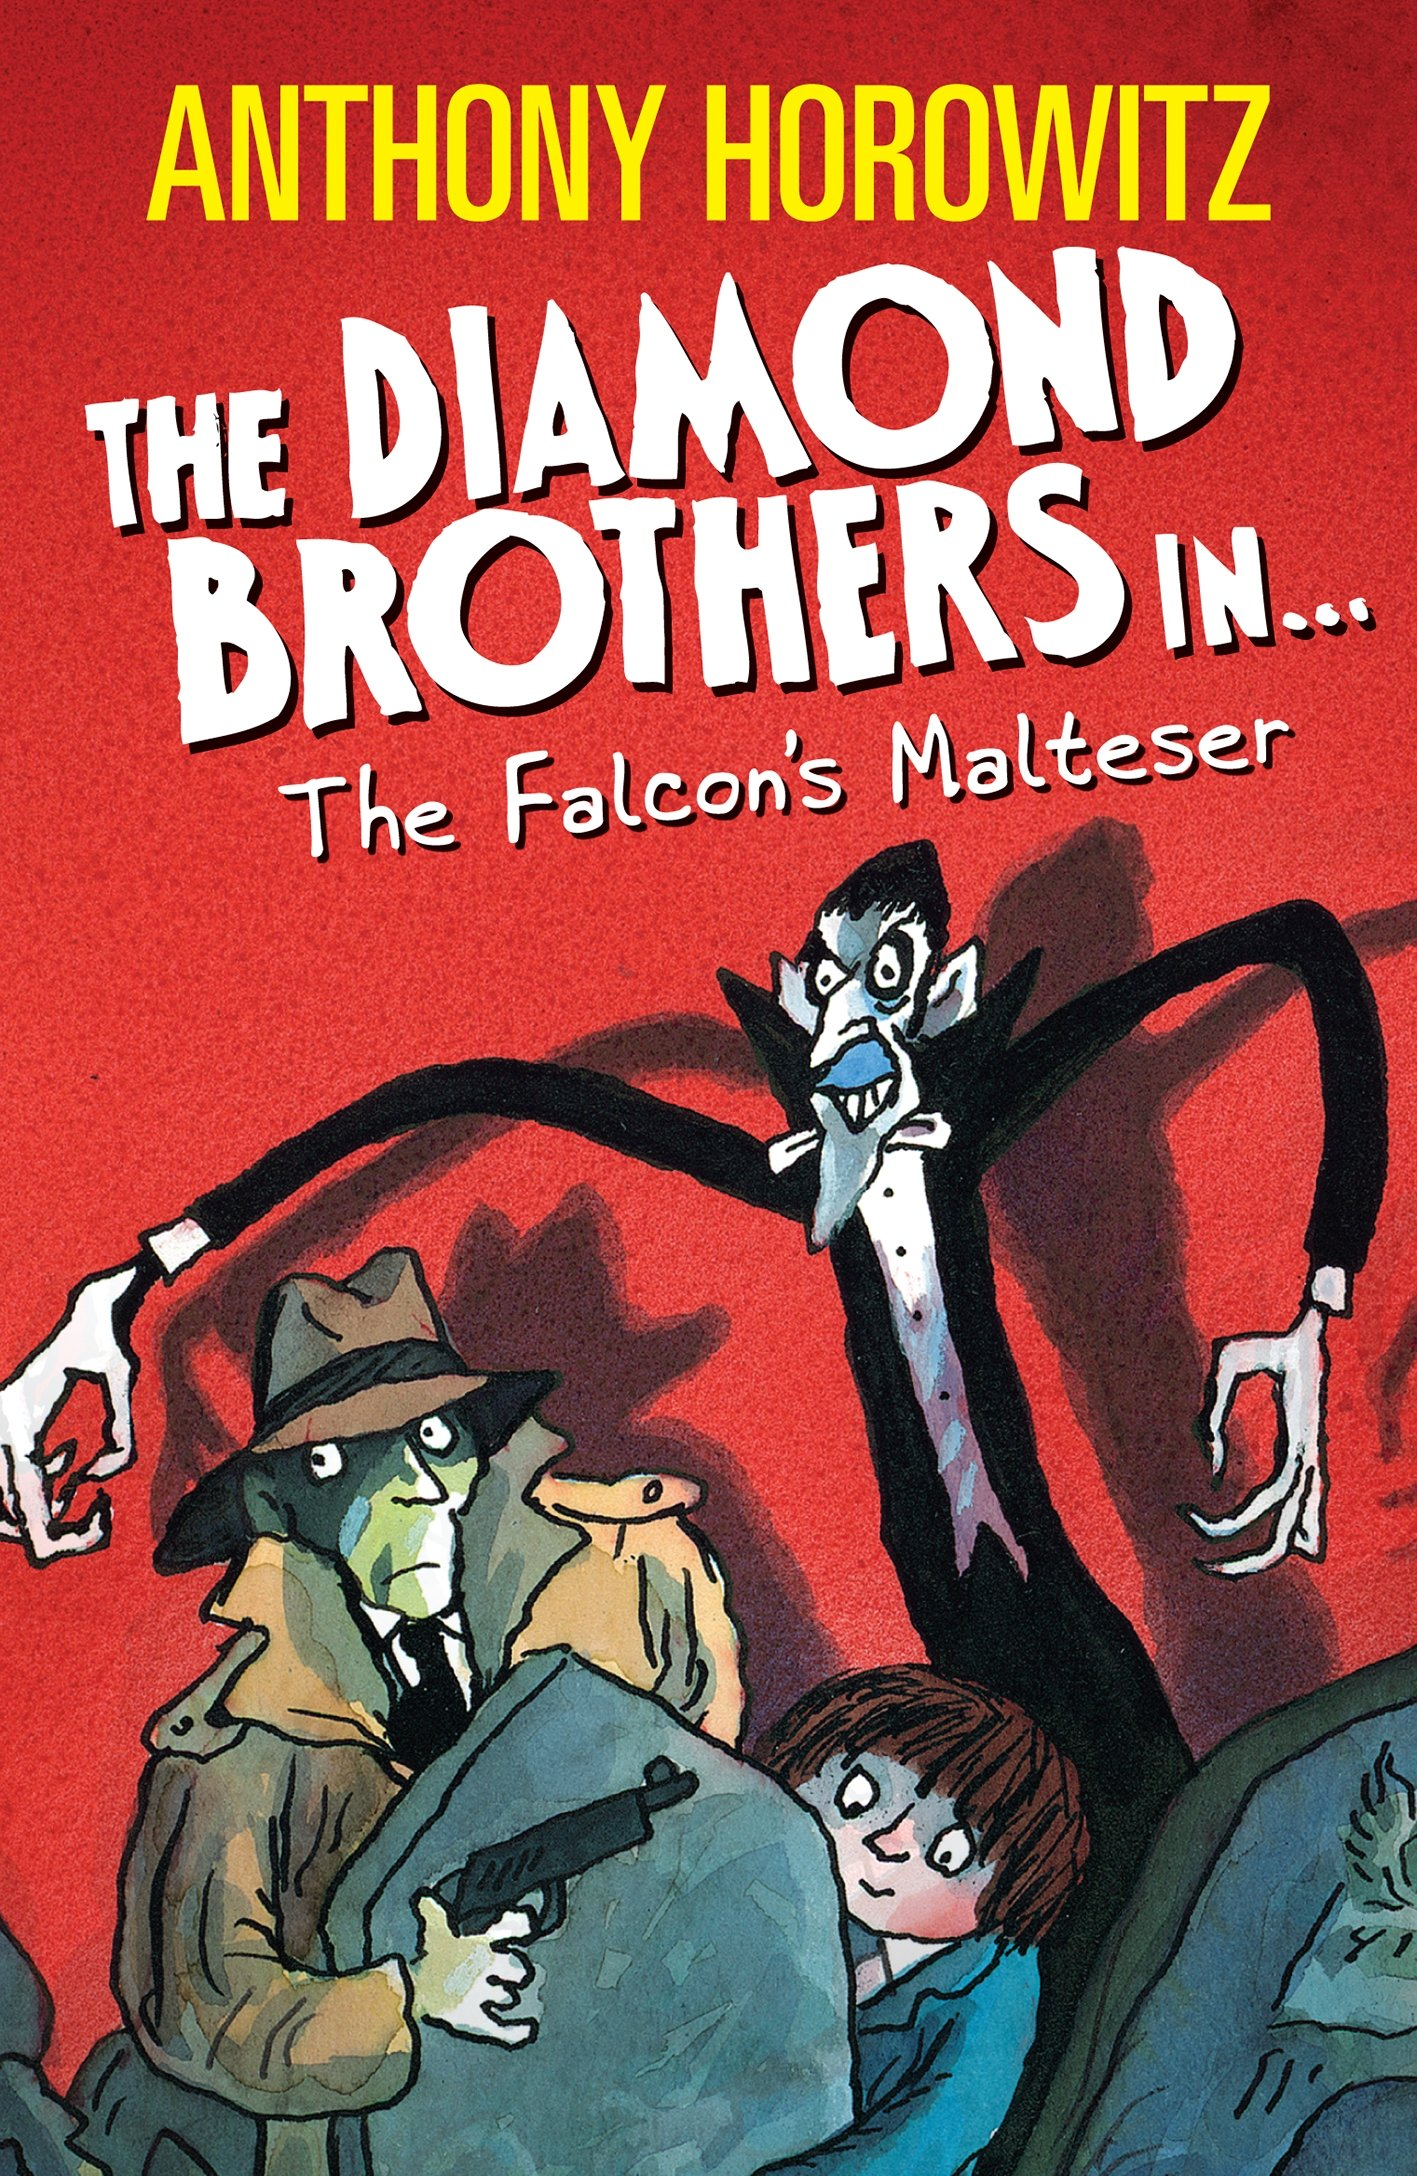 The Diamond Brothers series by Anthony Horowitz